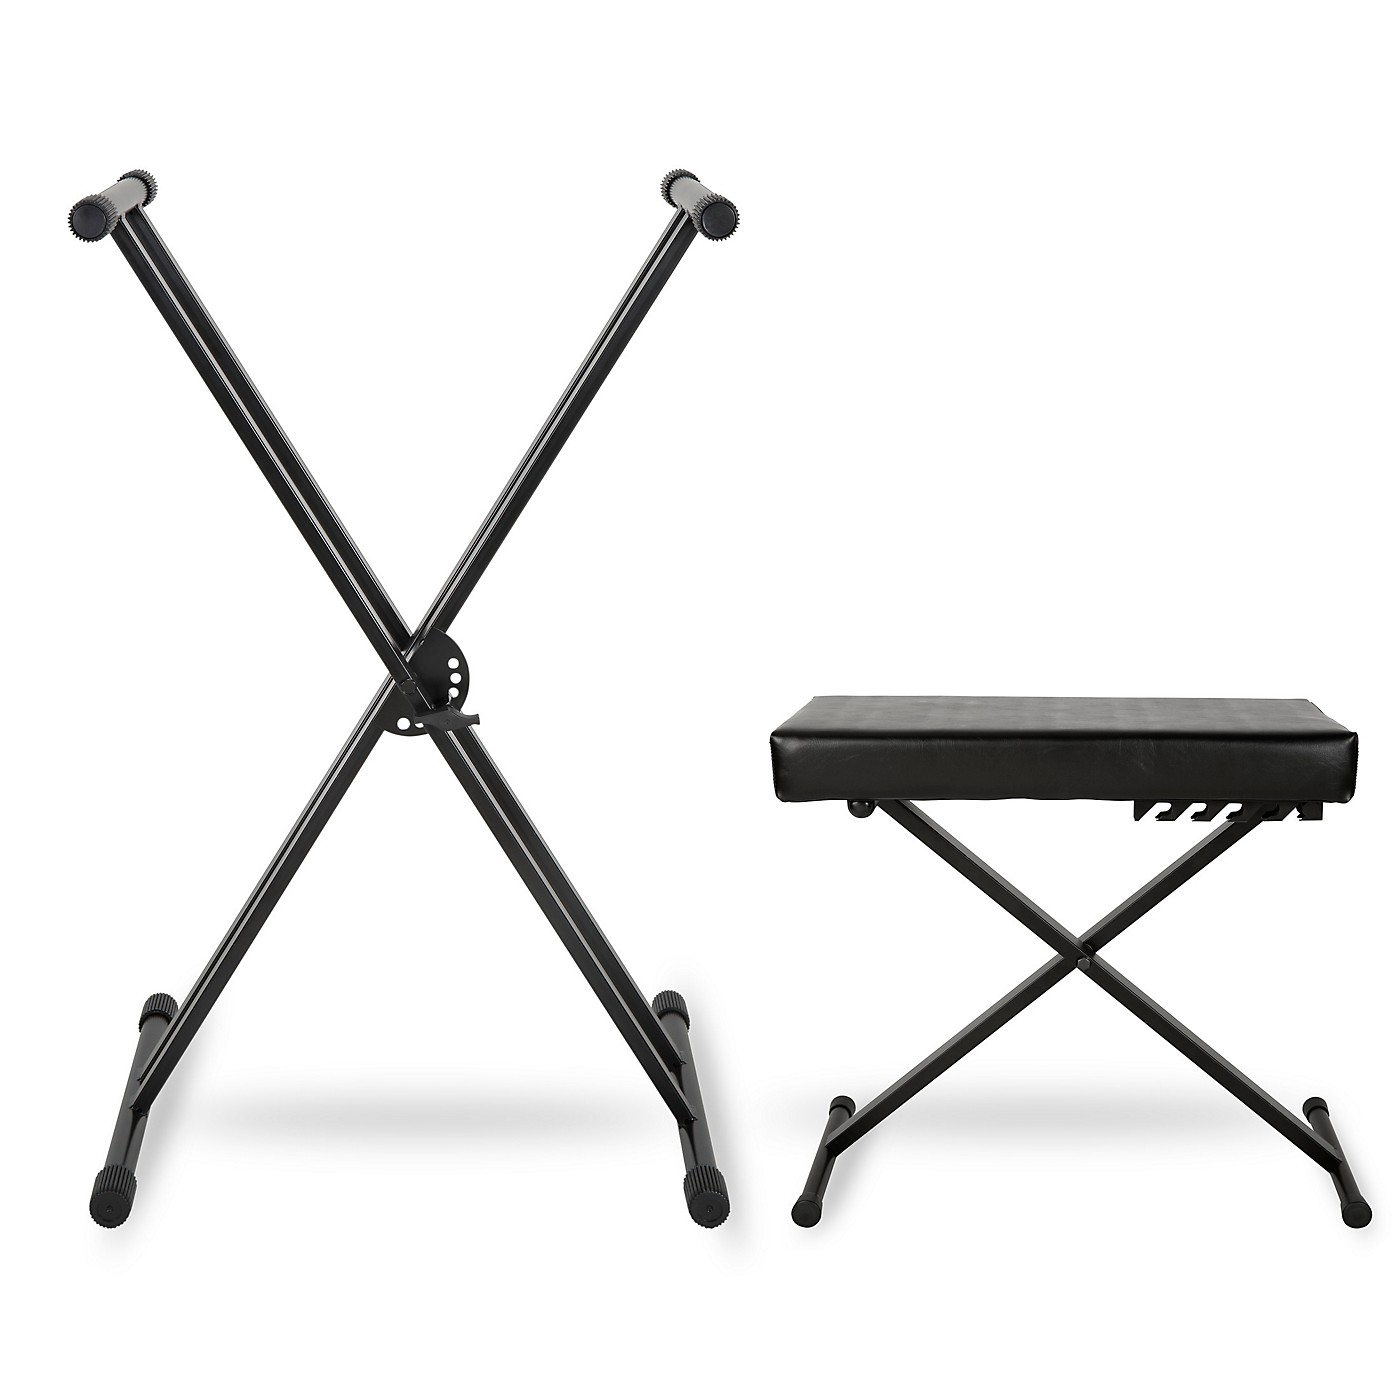 Musician's Gear KBX2 Double-Braced Keyboard Stand and Deluxe Keyboard Bench thumbnail